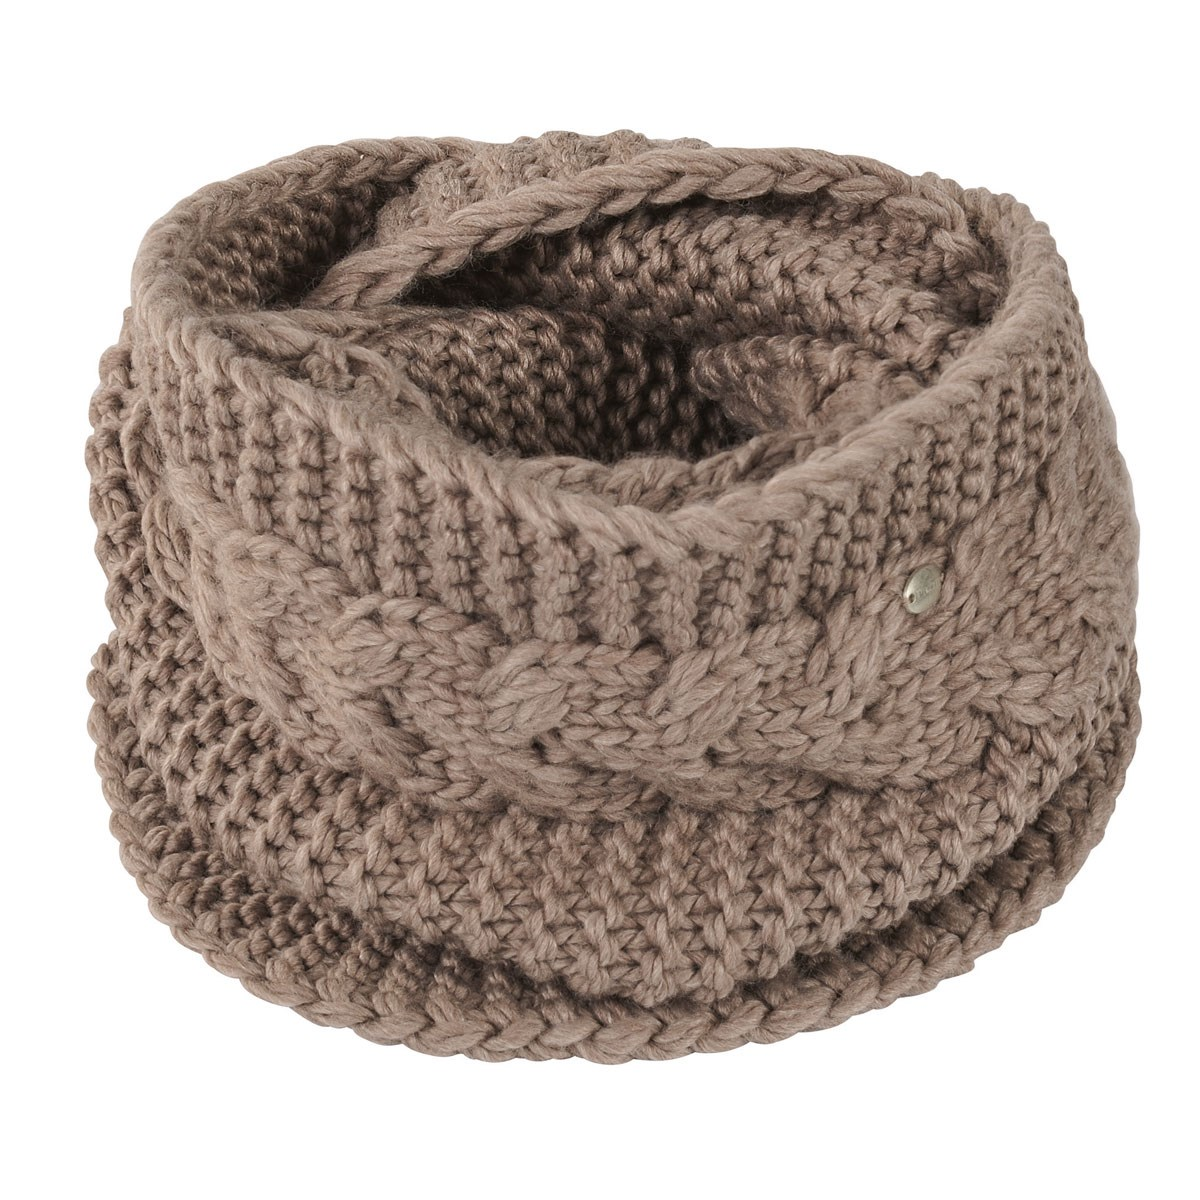 4f5bf34eabd Pikeur Cable Knit Loop Neck Warmer - Light Taupe - Redpost Equestrian